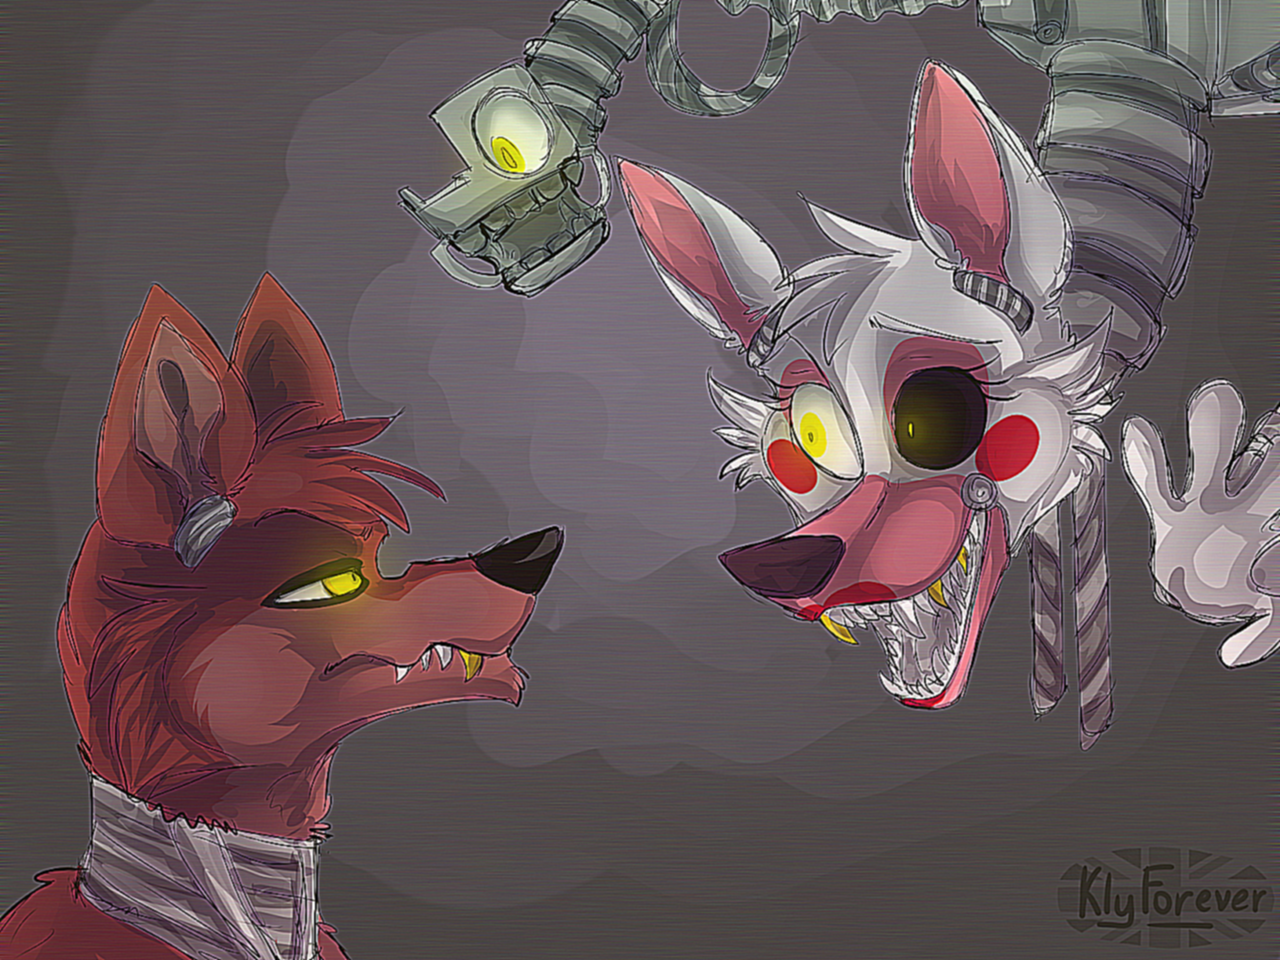 Foxy and Mangle by KlyForever on DeviantArt.